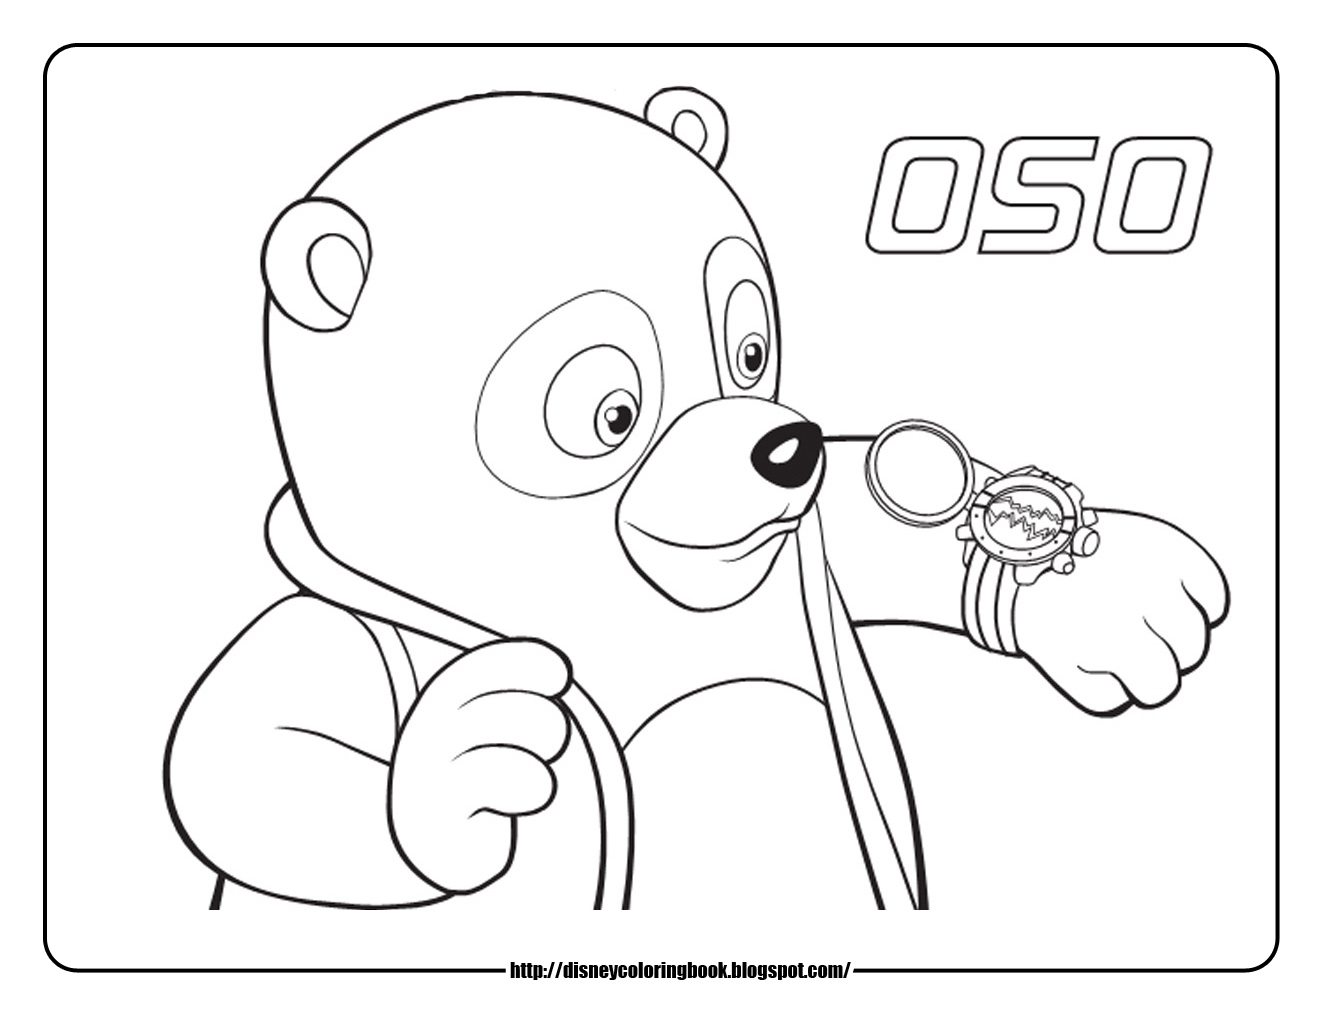 Coloring Pages Disney Junior : Free coloring pages of disney jr